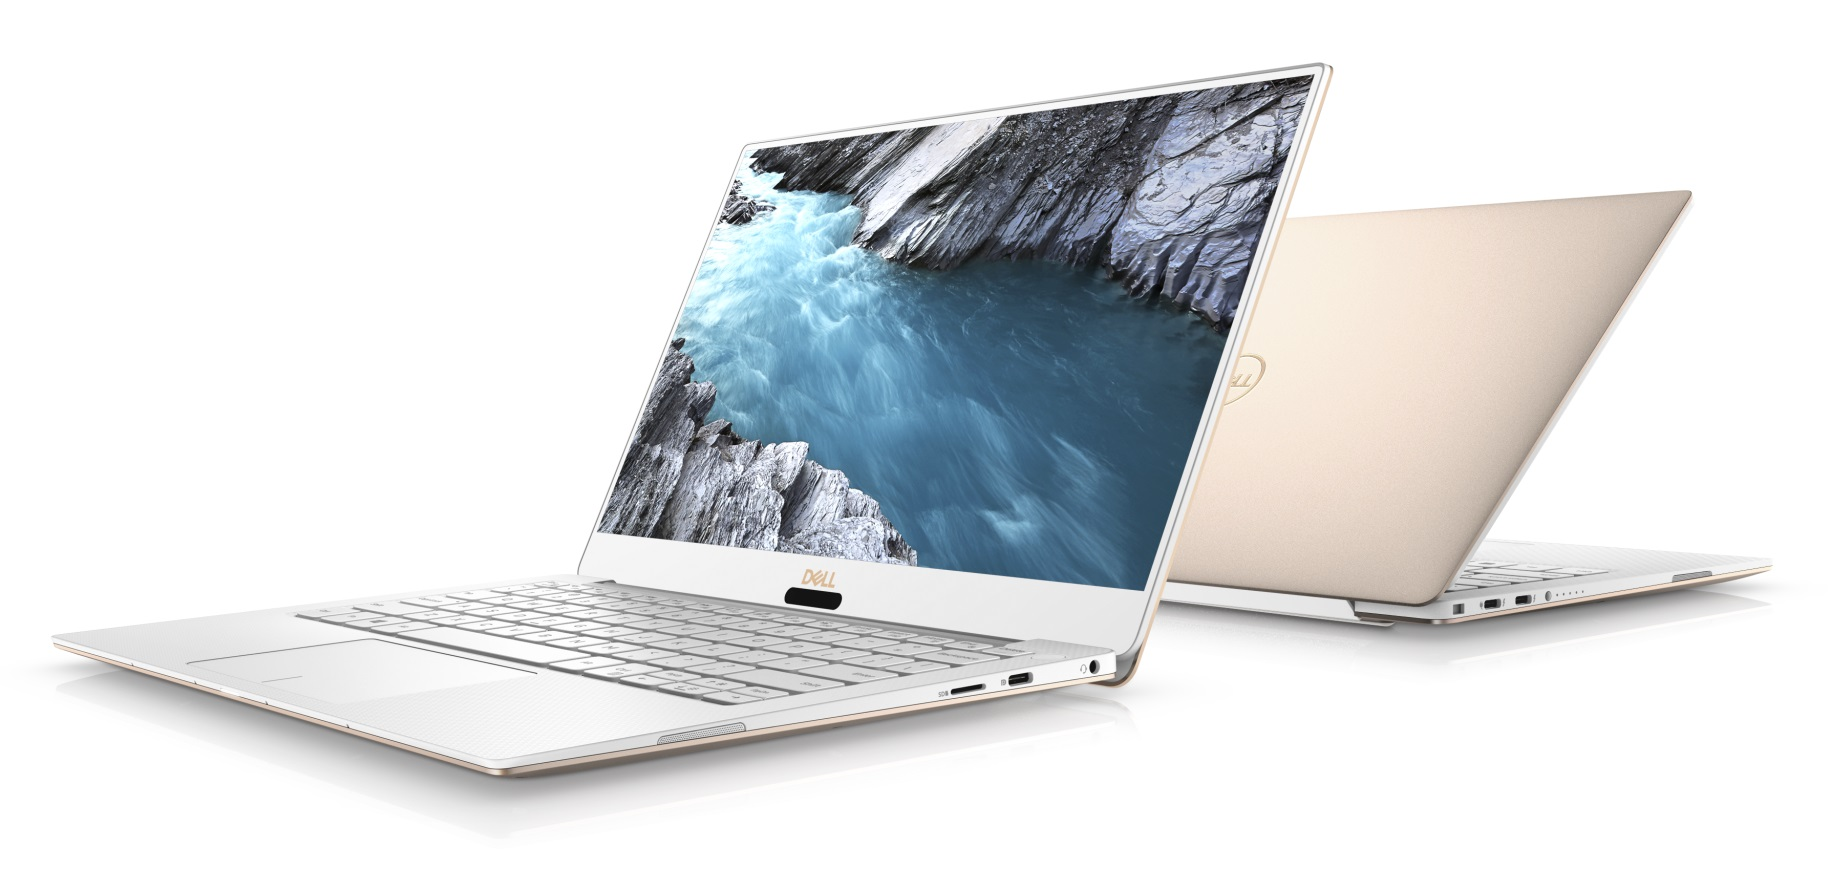 New Dell XPS 13: 4K (UHD) InfinityEdge Touch Screen, 8th Gen Intel